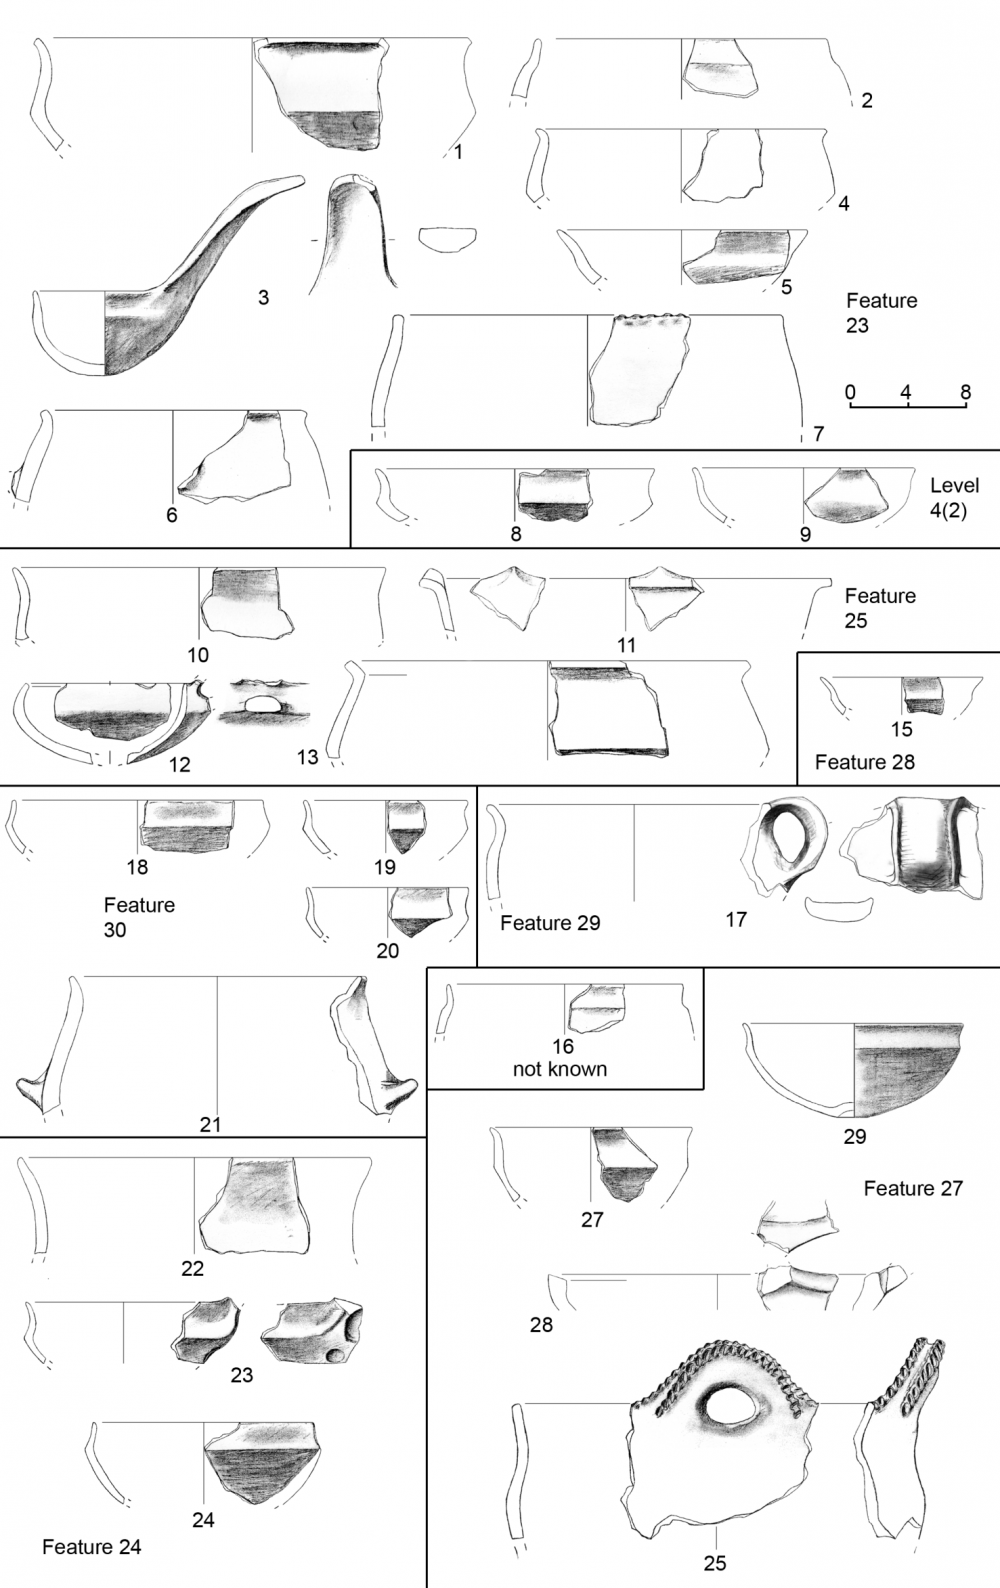 Tratturo caniò, impasto potsherds from the GIA excavations. Scale 1:4 unless otherwise stated (after Feiken et al. 2012; modified by the author)